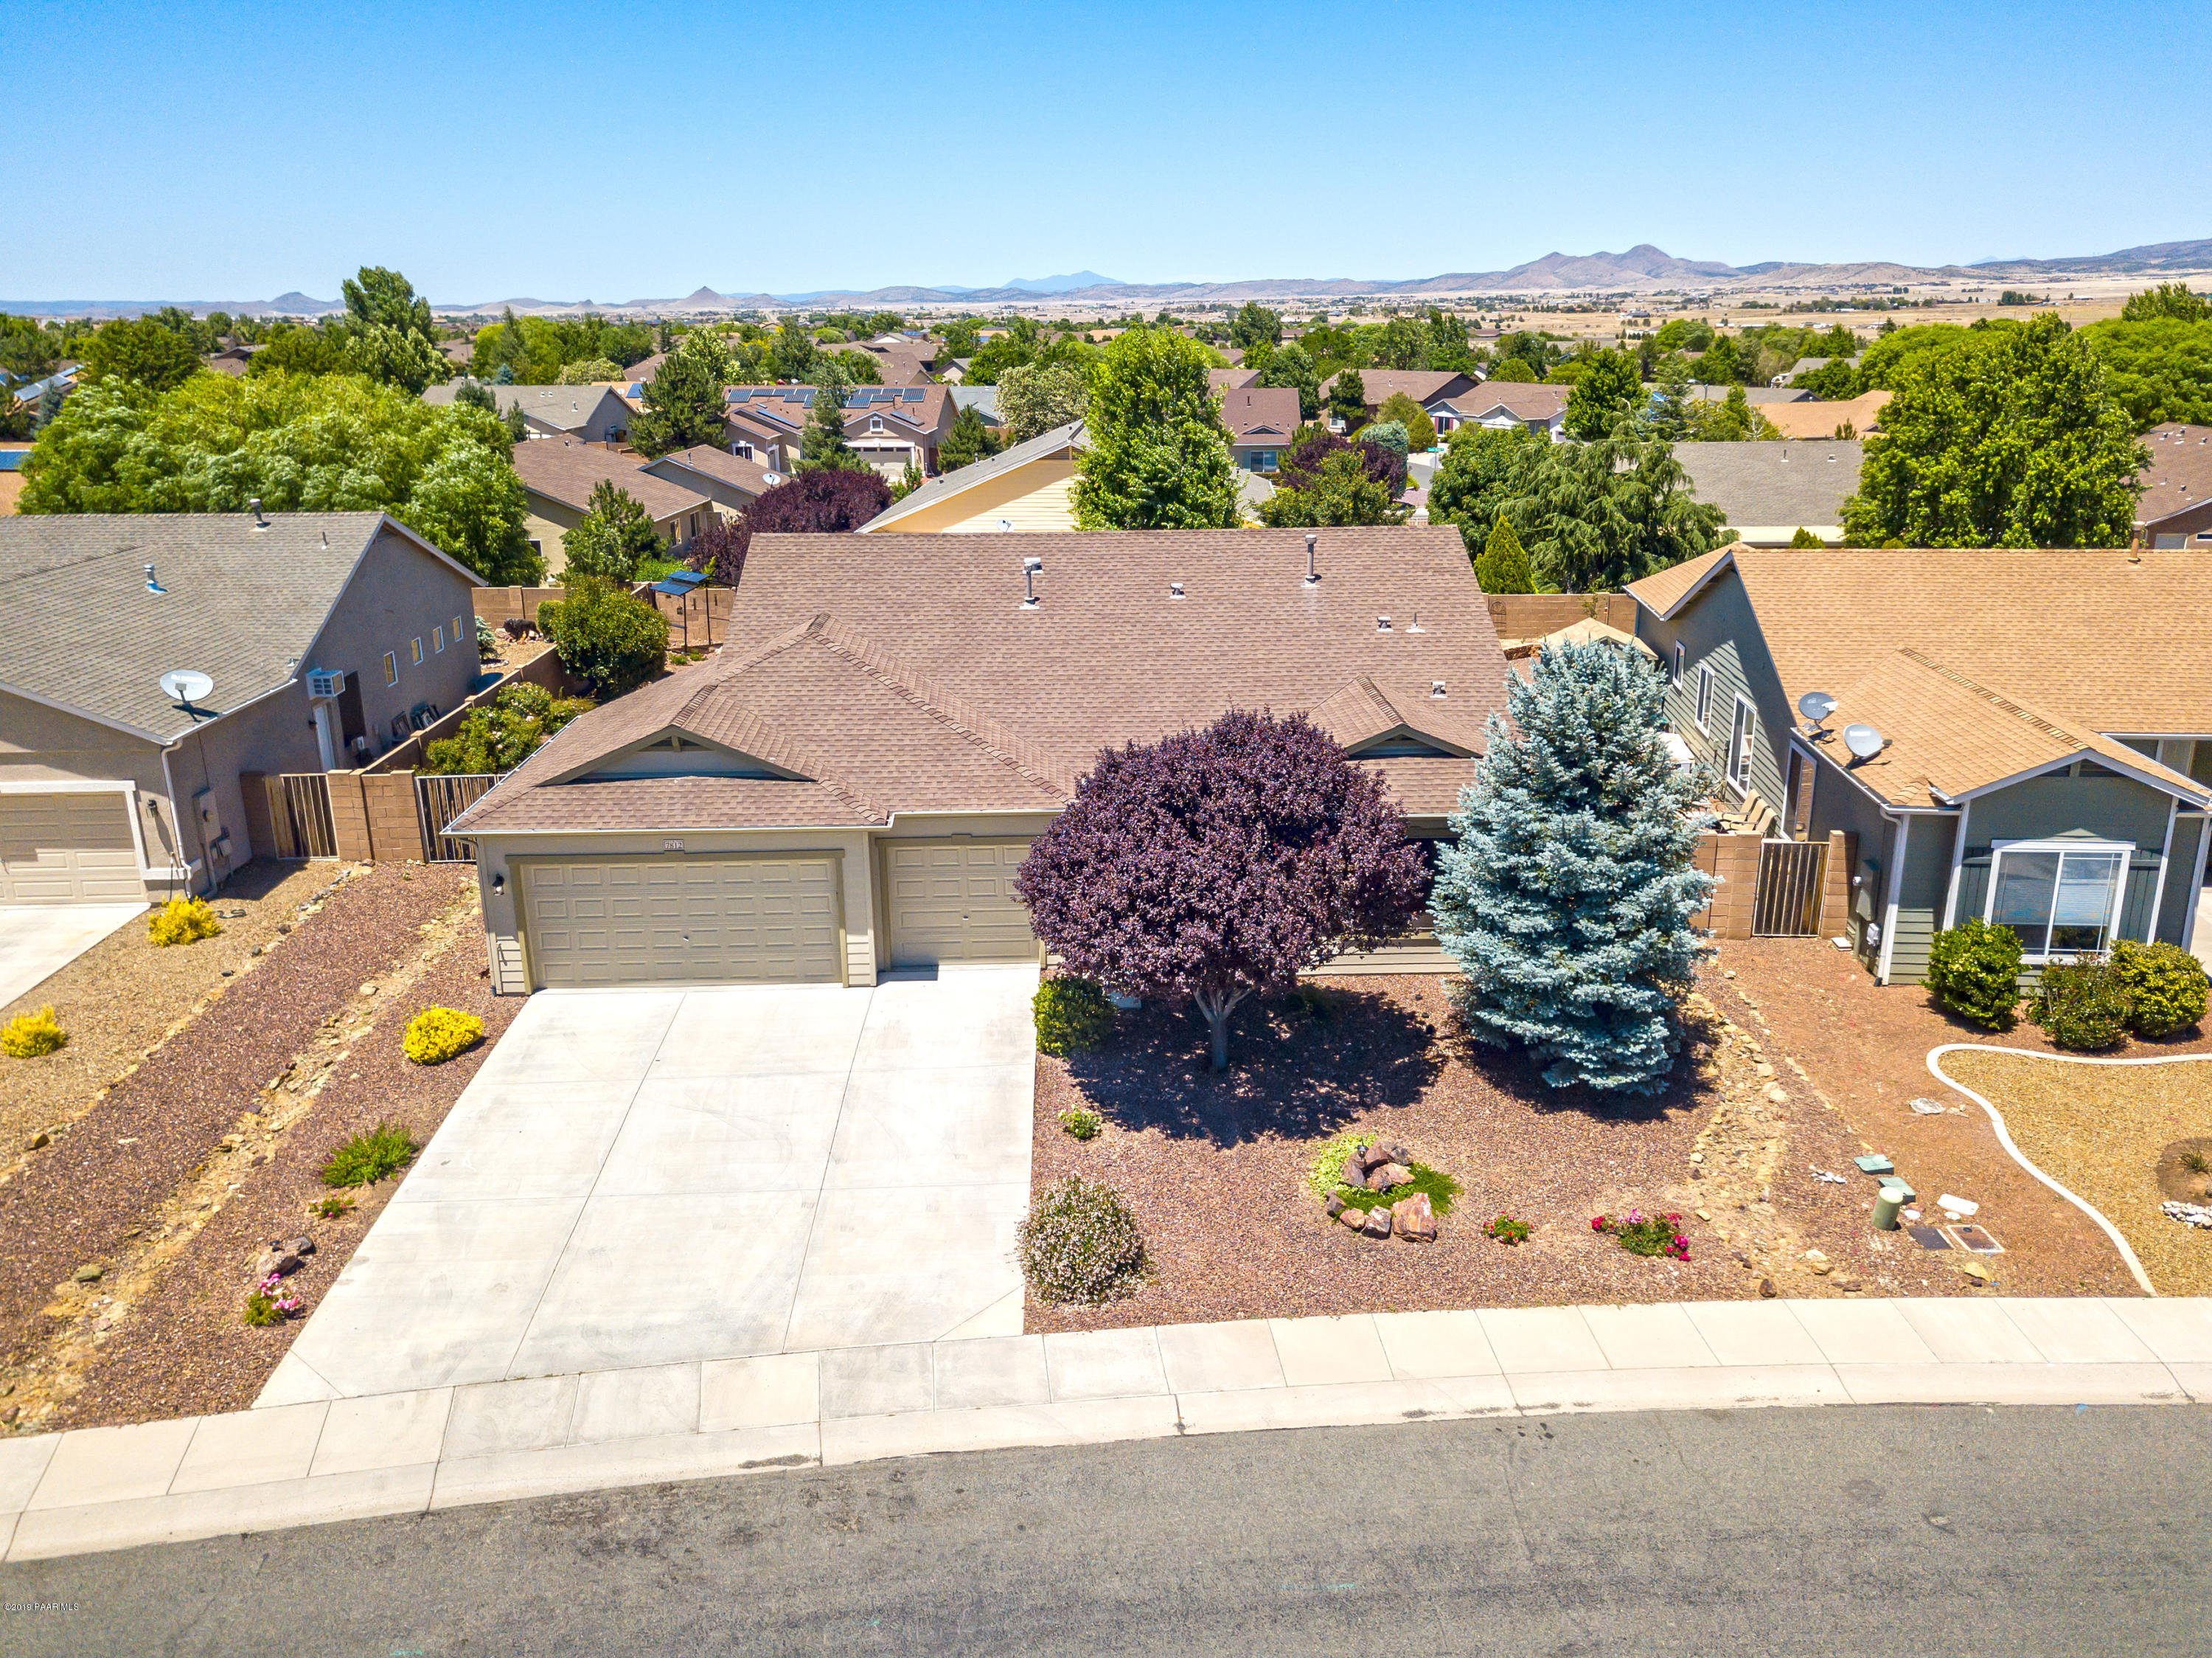 7812 E Prickly Pear Path 86315 - One of Prescott Valley Homes for Sale